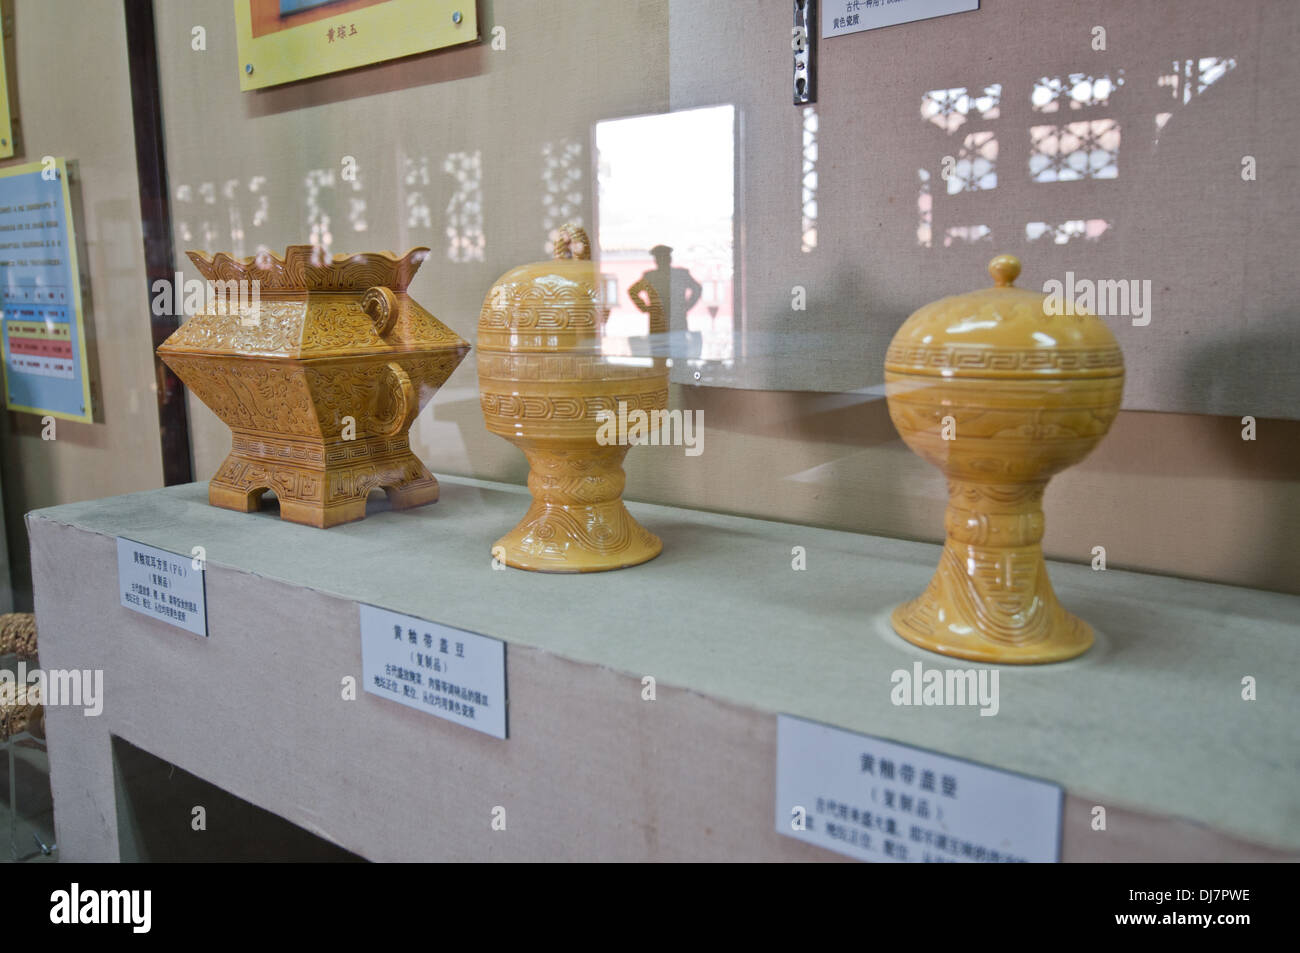 Imperial Earth God Worship House (Di Tan Cultural and Historical Relic Exhibition Room) in Temple of Earth in Beijing, China - Stock Image